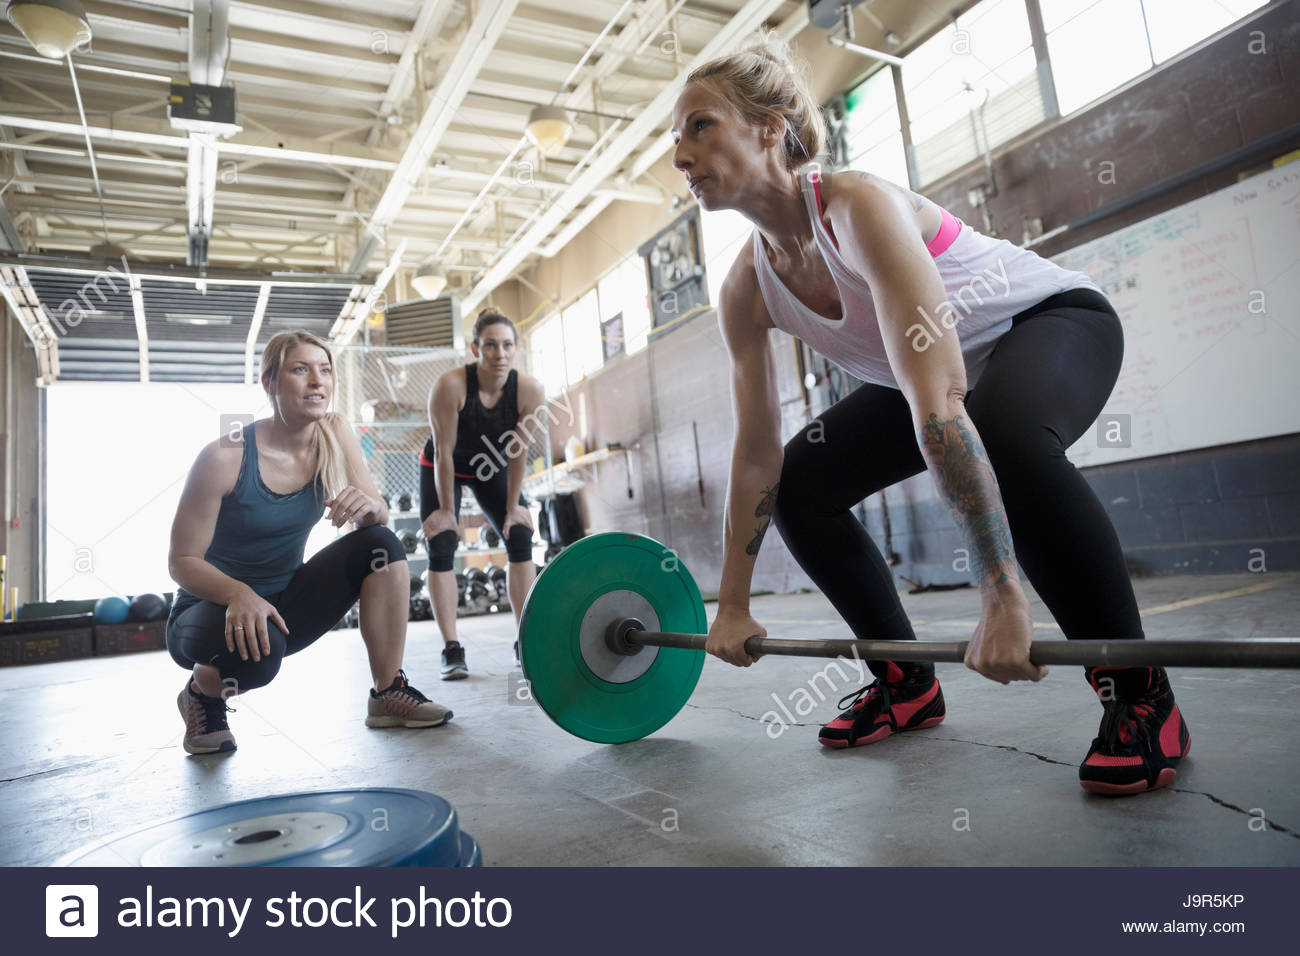 Women motivating friend weightlifting, doing barbell deadlift at gritty gym - Stock Image